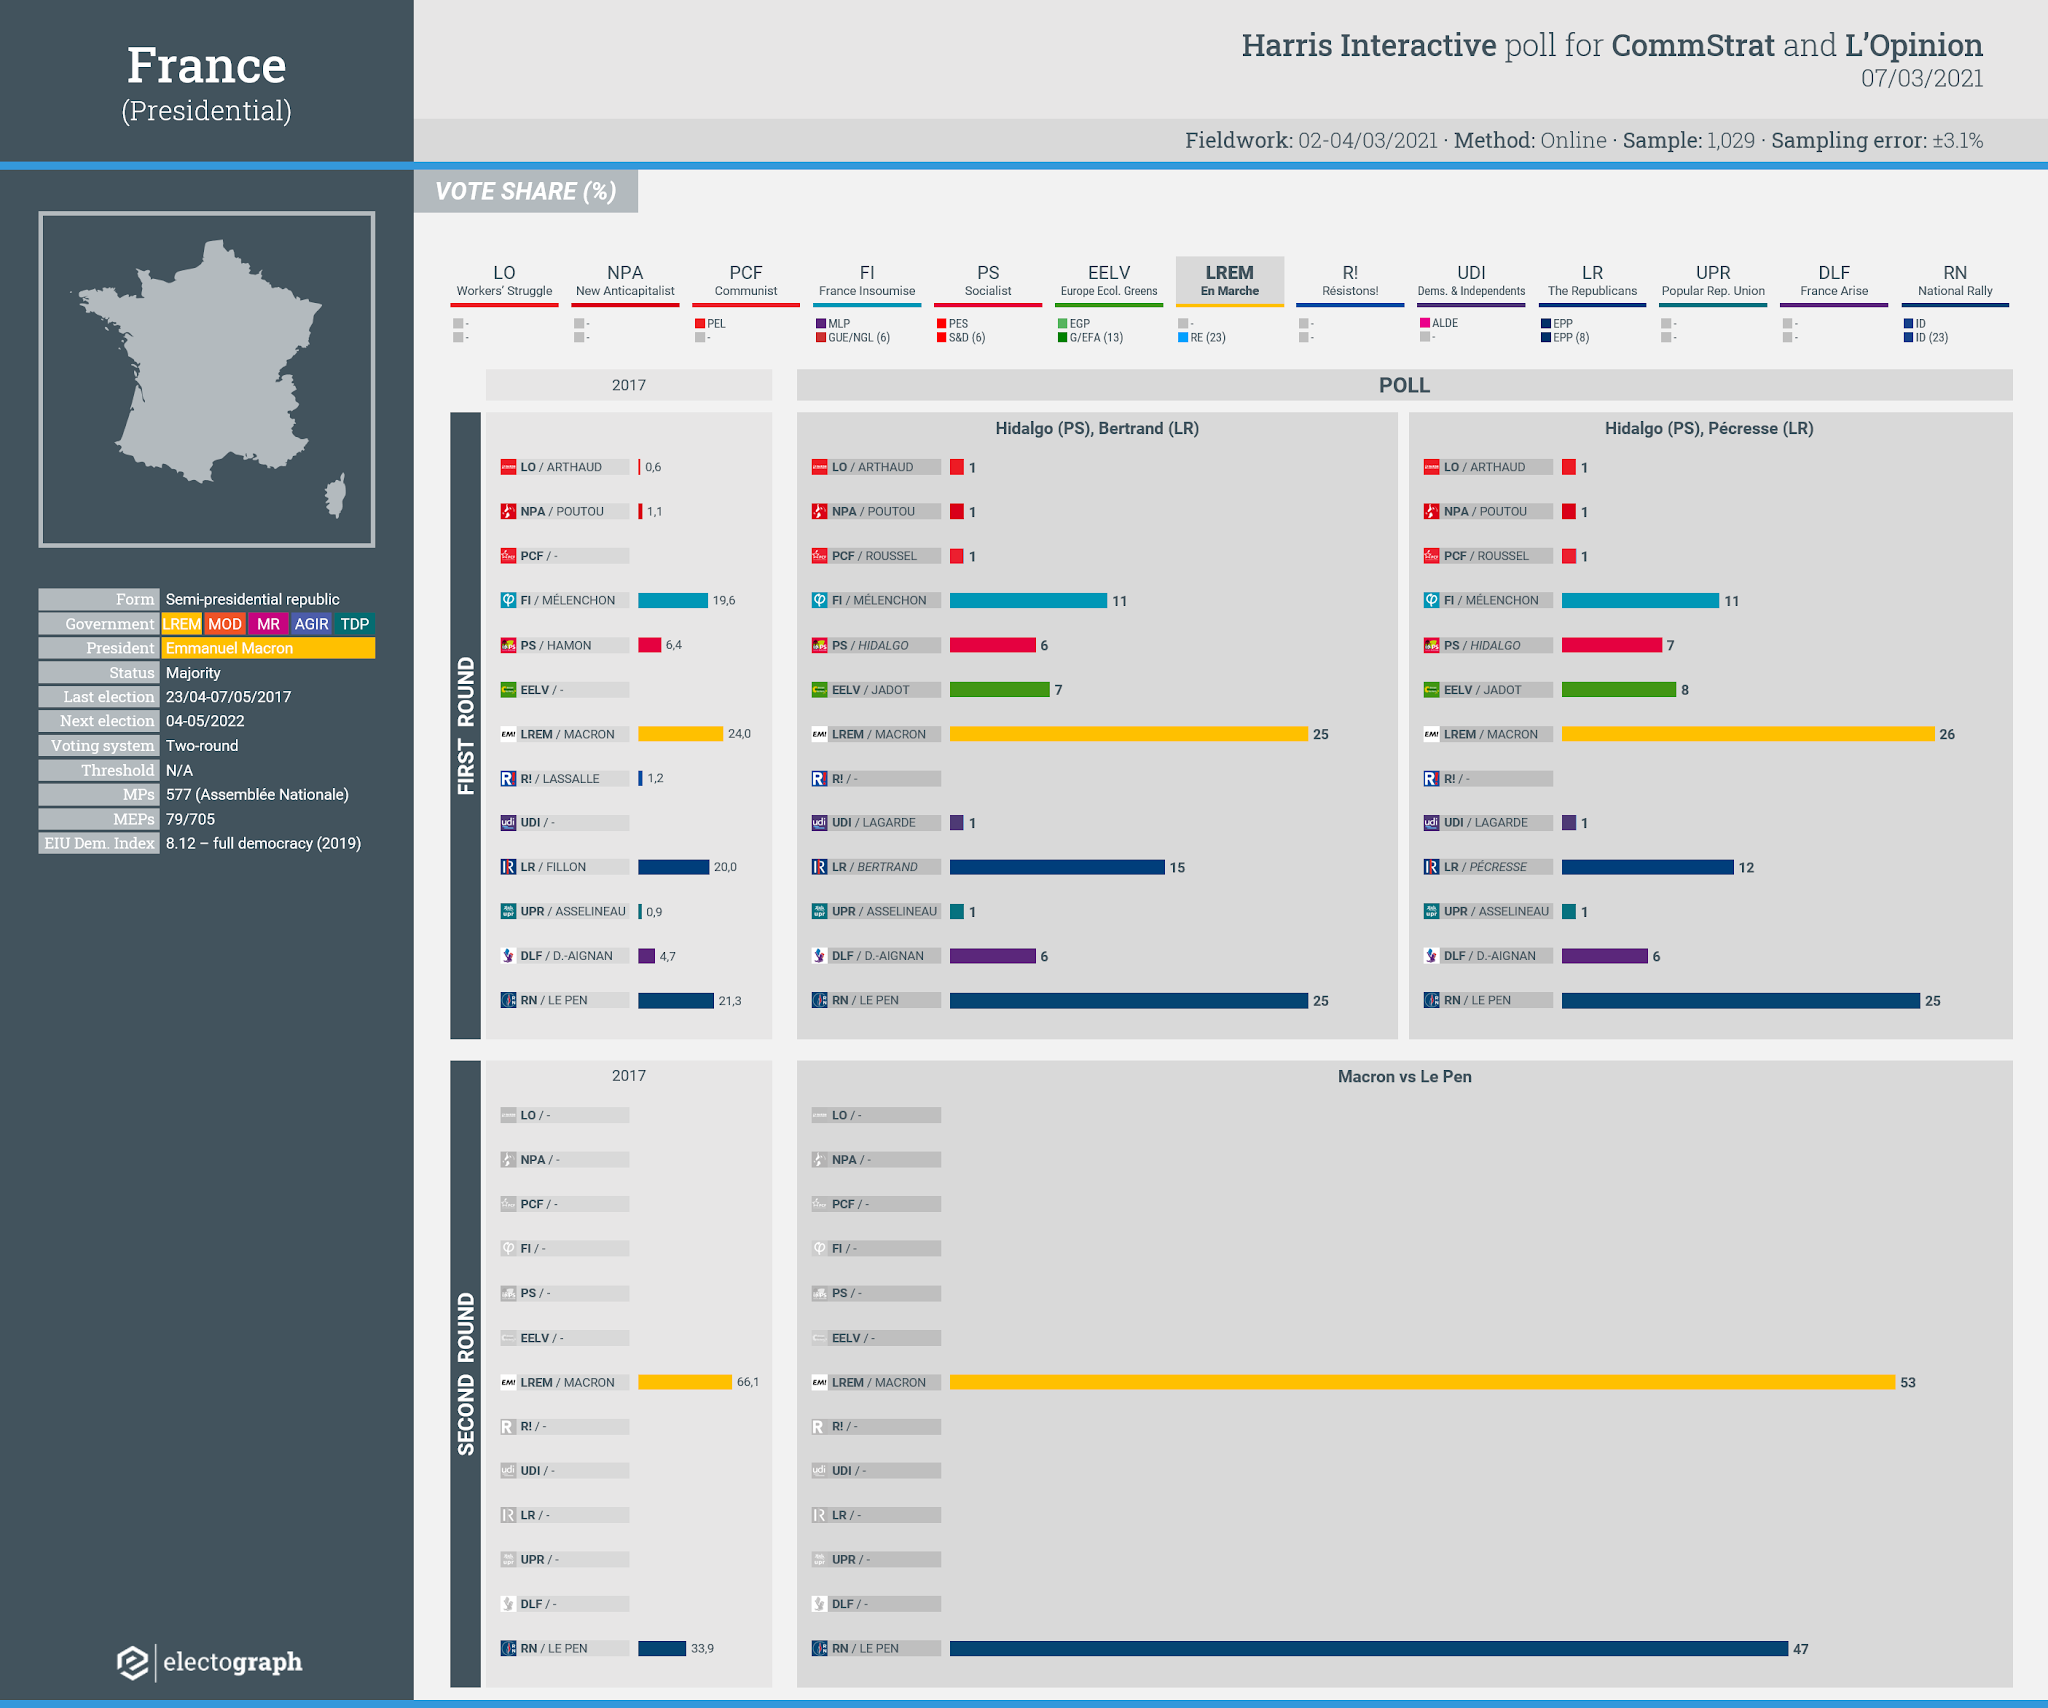 FRANCE: Harris Interactive poll chart, 7 March 2021